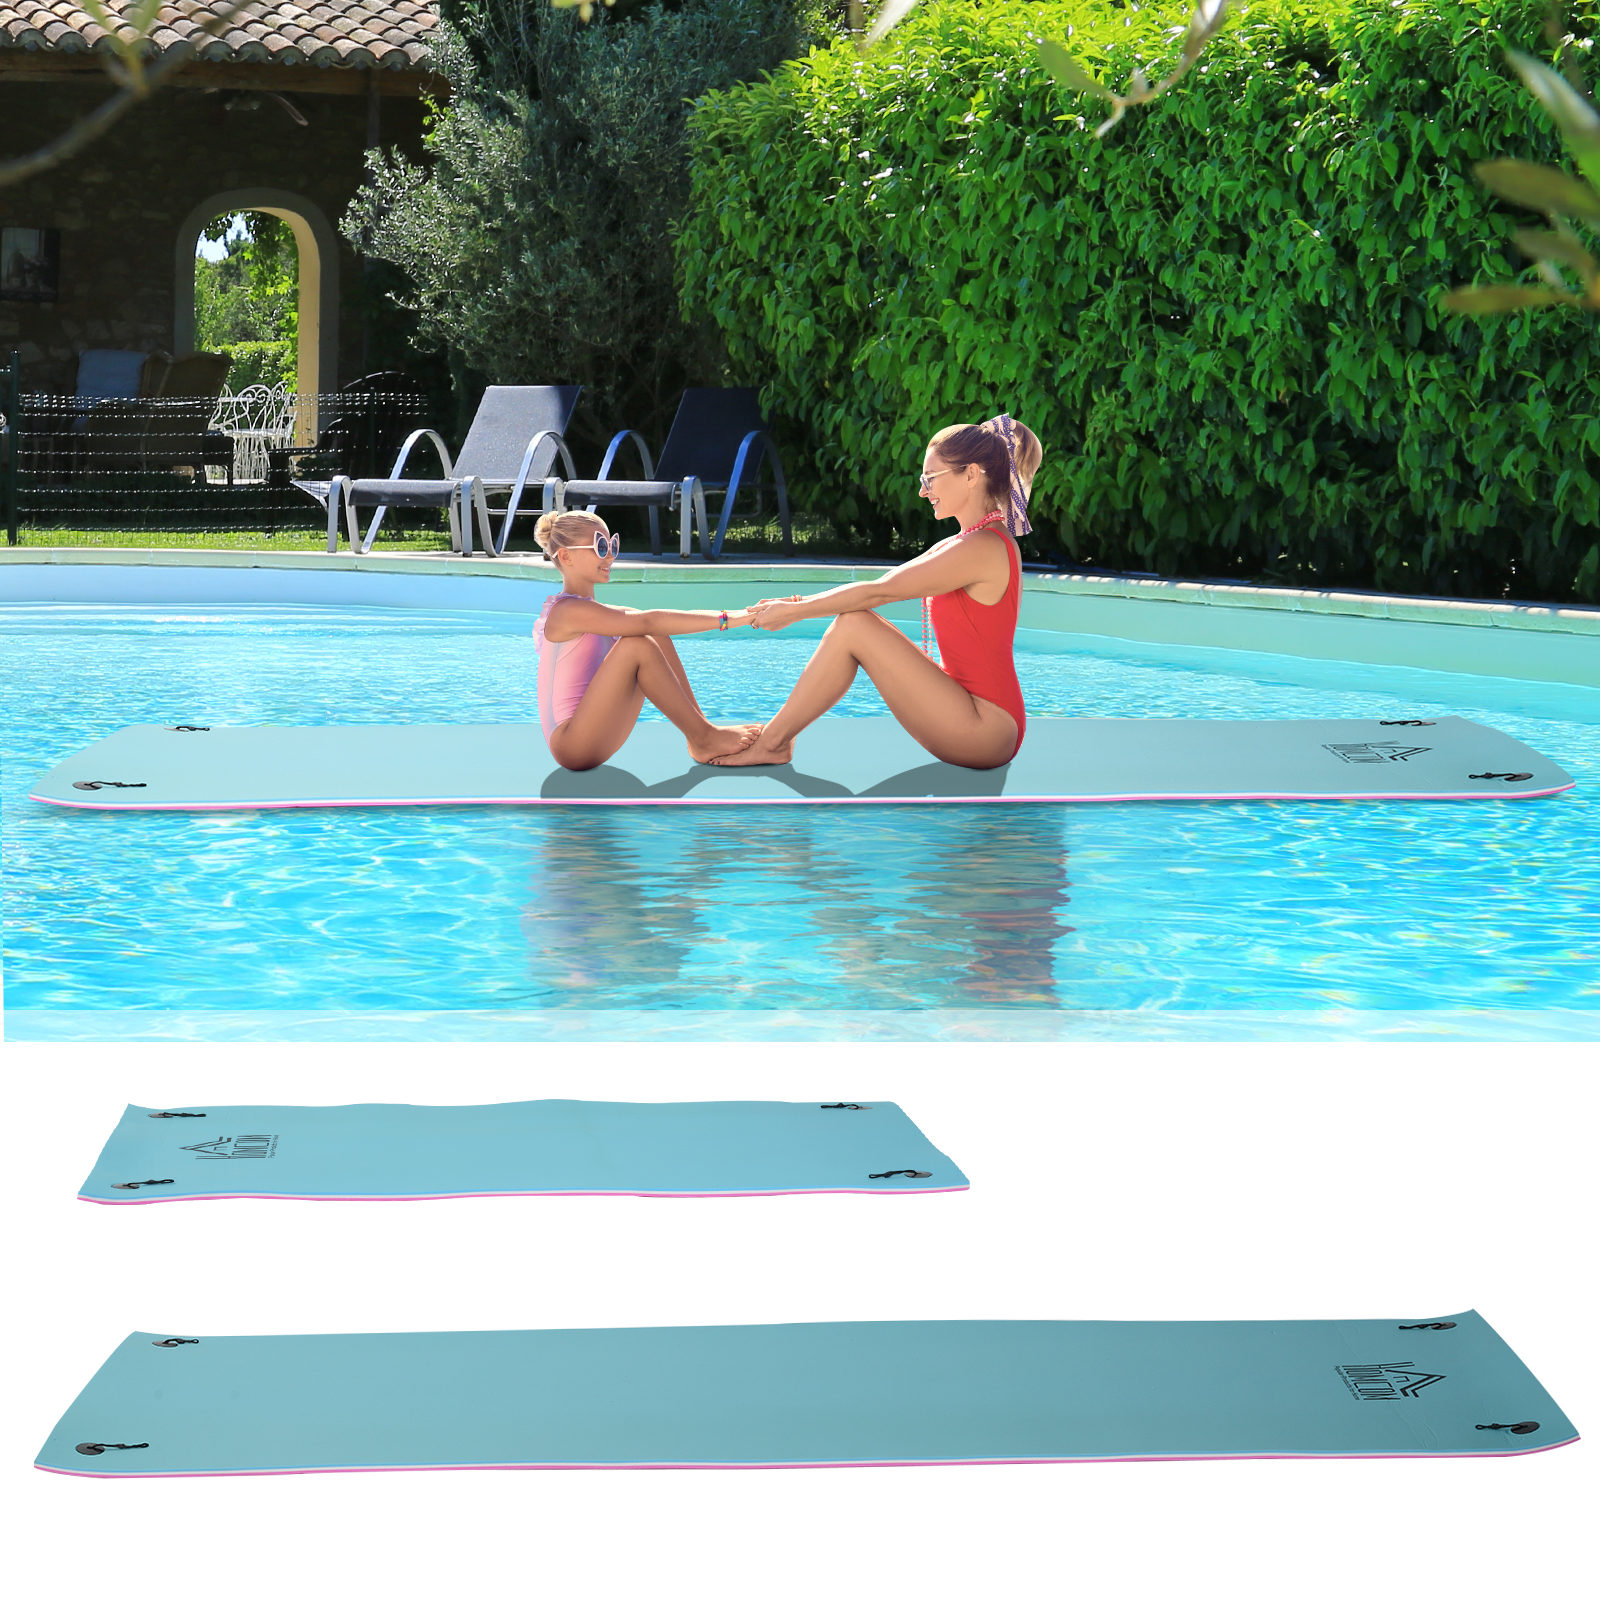 Details about 10'/16.5\' x 5' Floating Foam Play Mat Lounger Mattress Pool  Party Lake River